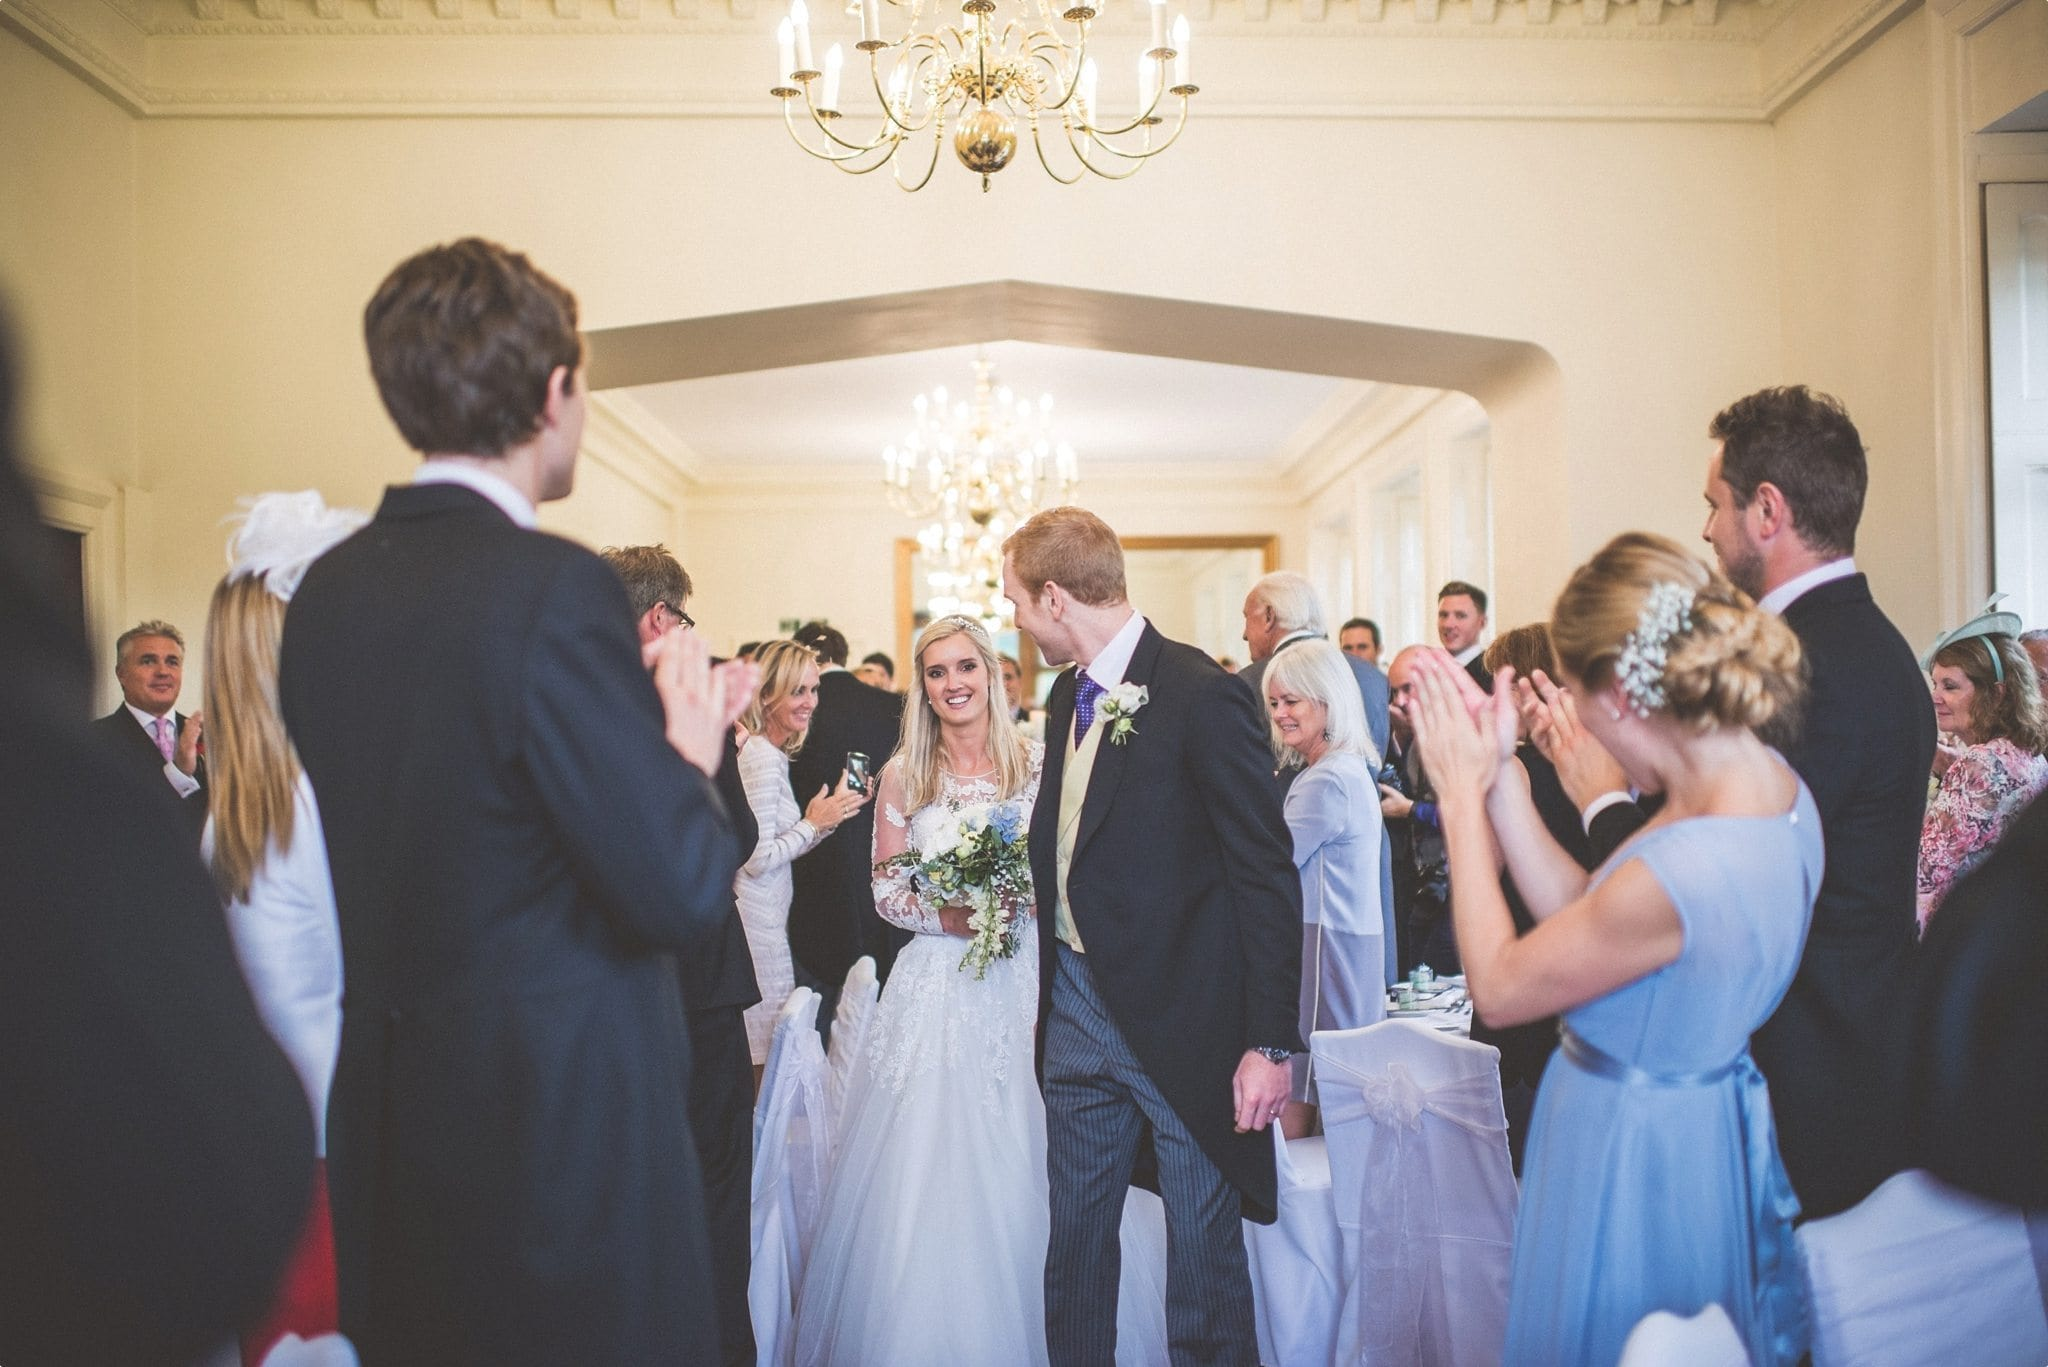 st-audries-park-wedding-maria-assia-photography-493